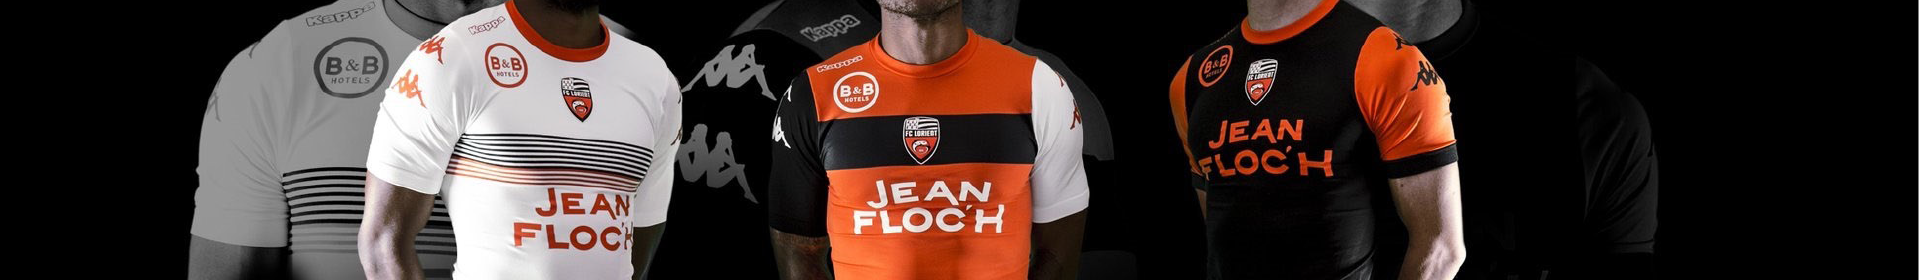 maillot-football-club-lorient-fcl-2017-2018-jean-floch